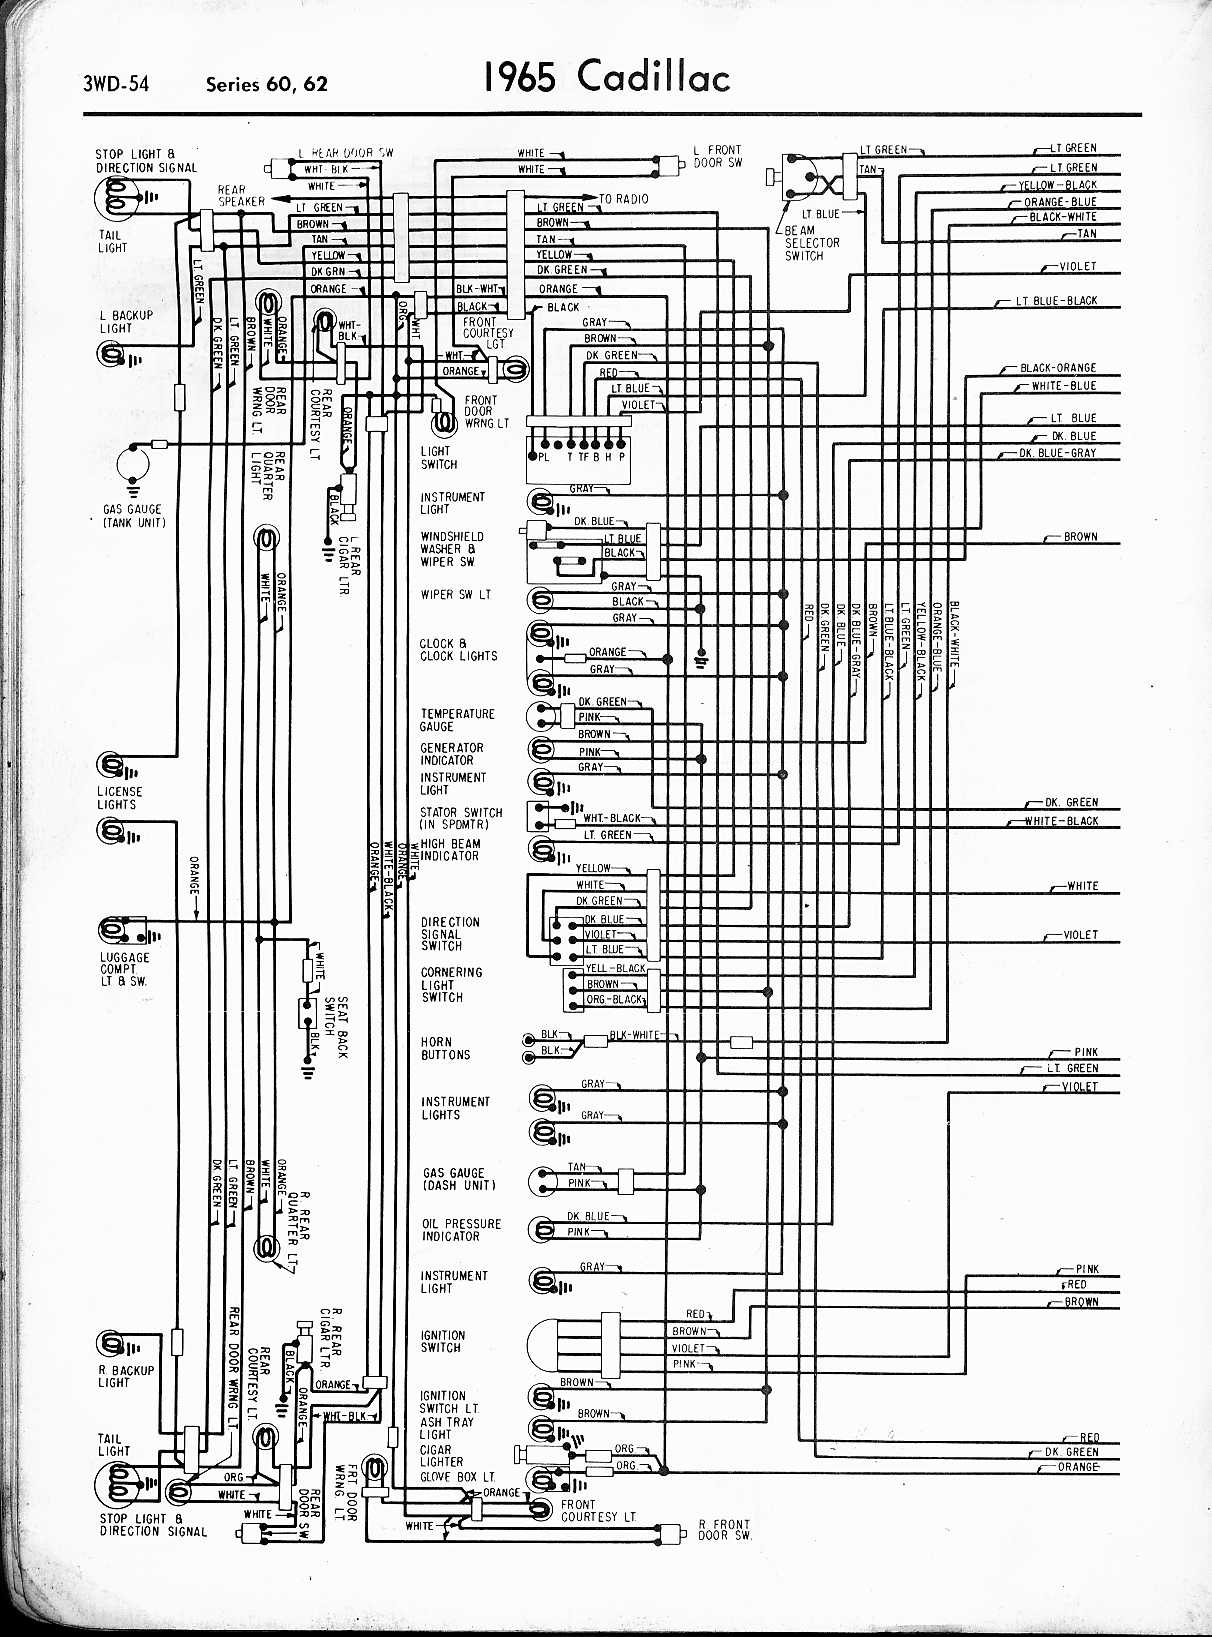 1964 Cadillac Wiring Diagram - Free Vehicle Wiring Diagrams • on fleetwood pace arrow wiring, fleetwood bounder wiring-diagram, garbage disposal drain diagram, hooking up a dishwasher and garbage disposal diagram, fleetwood rv diagrams, 1990 fleetwood motorhome fuel pump diagram, fleetwood wiring schematic, information technology diagram, step diagram, fleetwood rv tv wiring, propane tank installation diagram, fleetwood southwind battery diagram, allison transmission diagram, water meter installation diagram, fleetwood motorhome electrical diagram, 1994 fleetwood battery diagram, chassis battery diagram, 2006 chevy 2500 trailer electrical diagram, motorhome battery diagram,